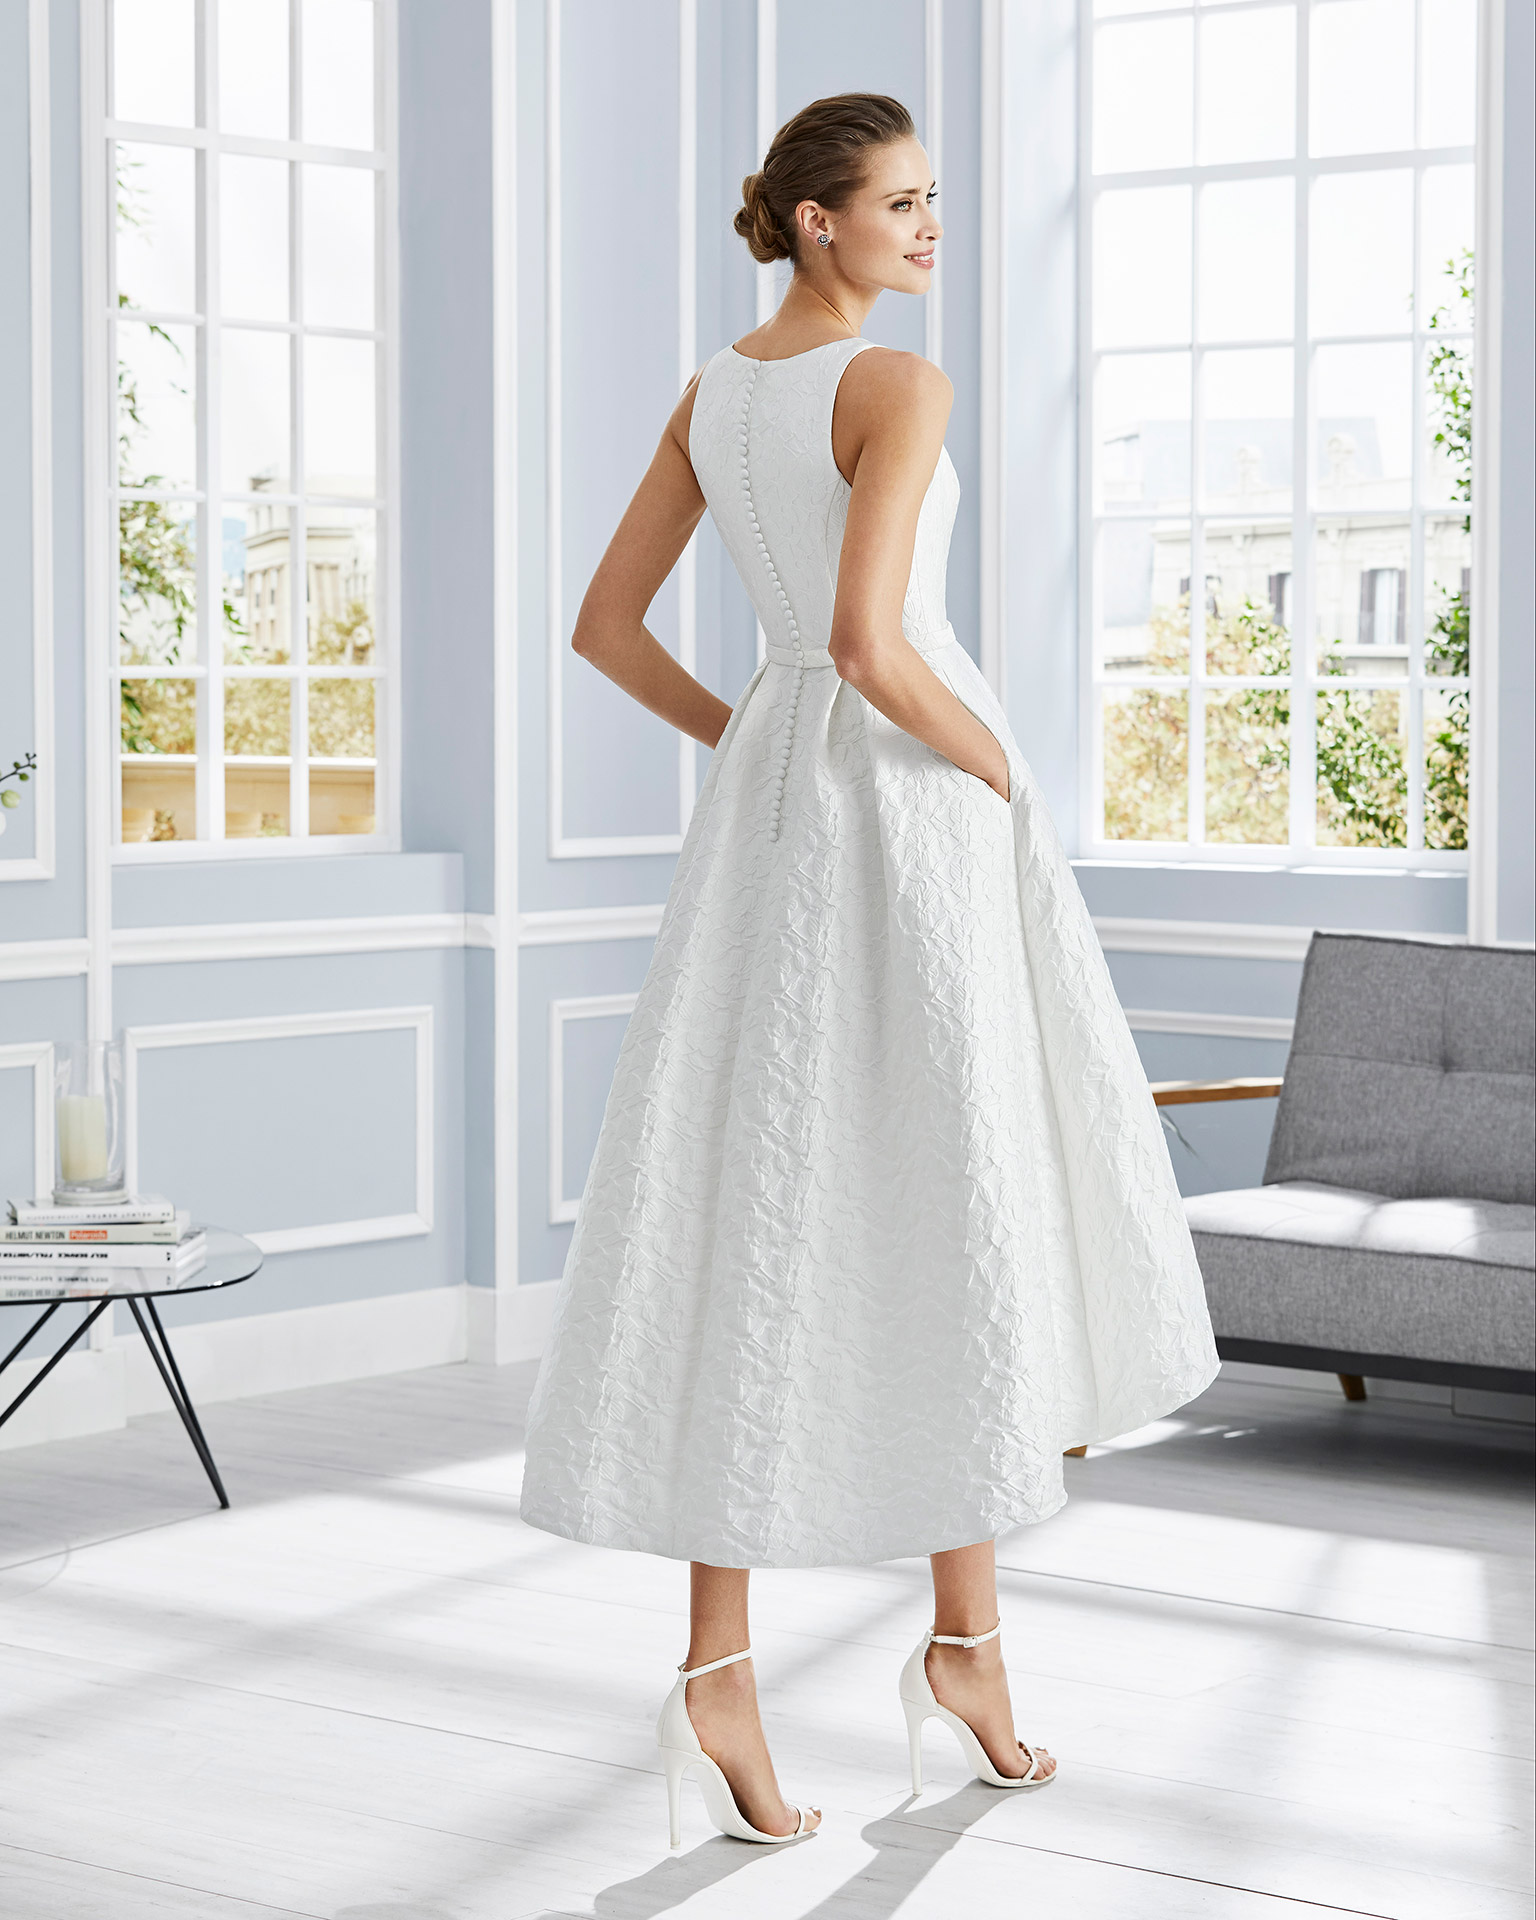 Short brocade cocktail dress. Round neckline with a bow at the waist. With brocade jacket. 2020 COUTURE CLUB Collection.